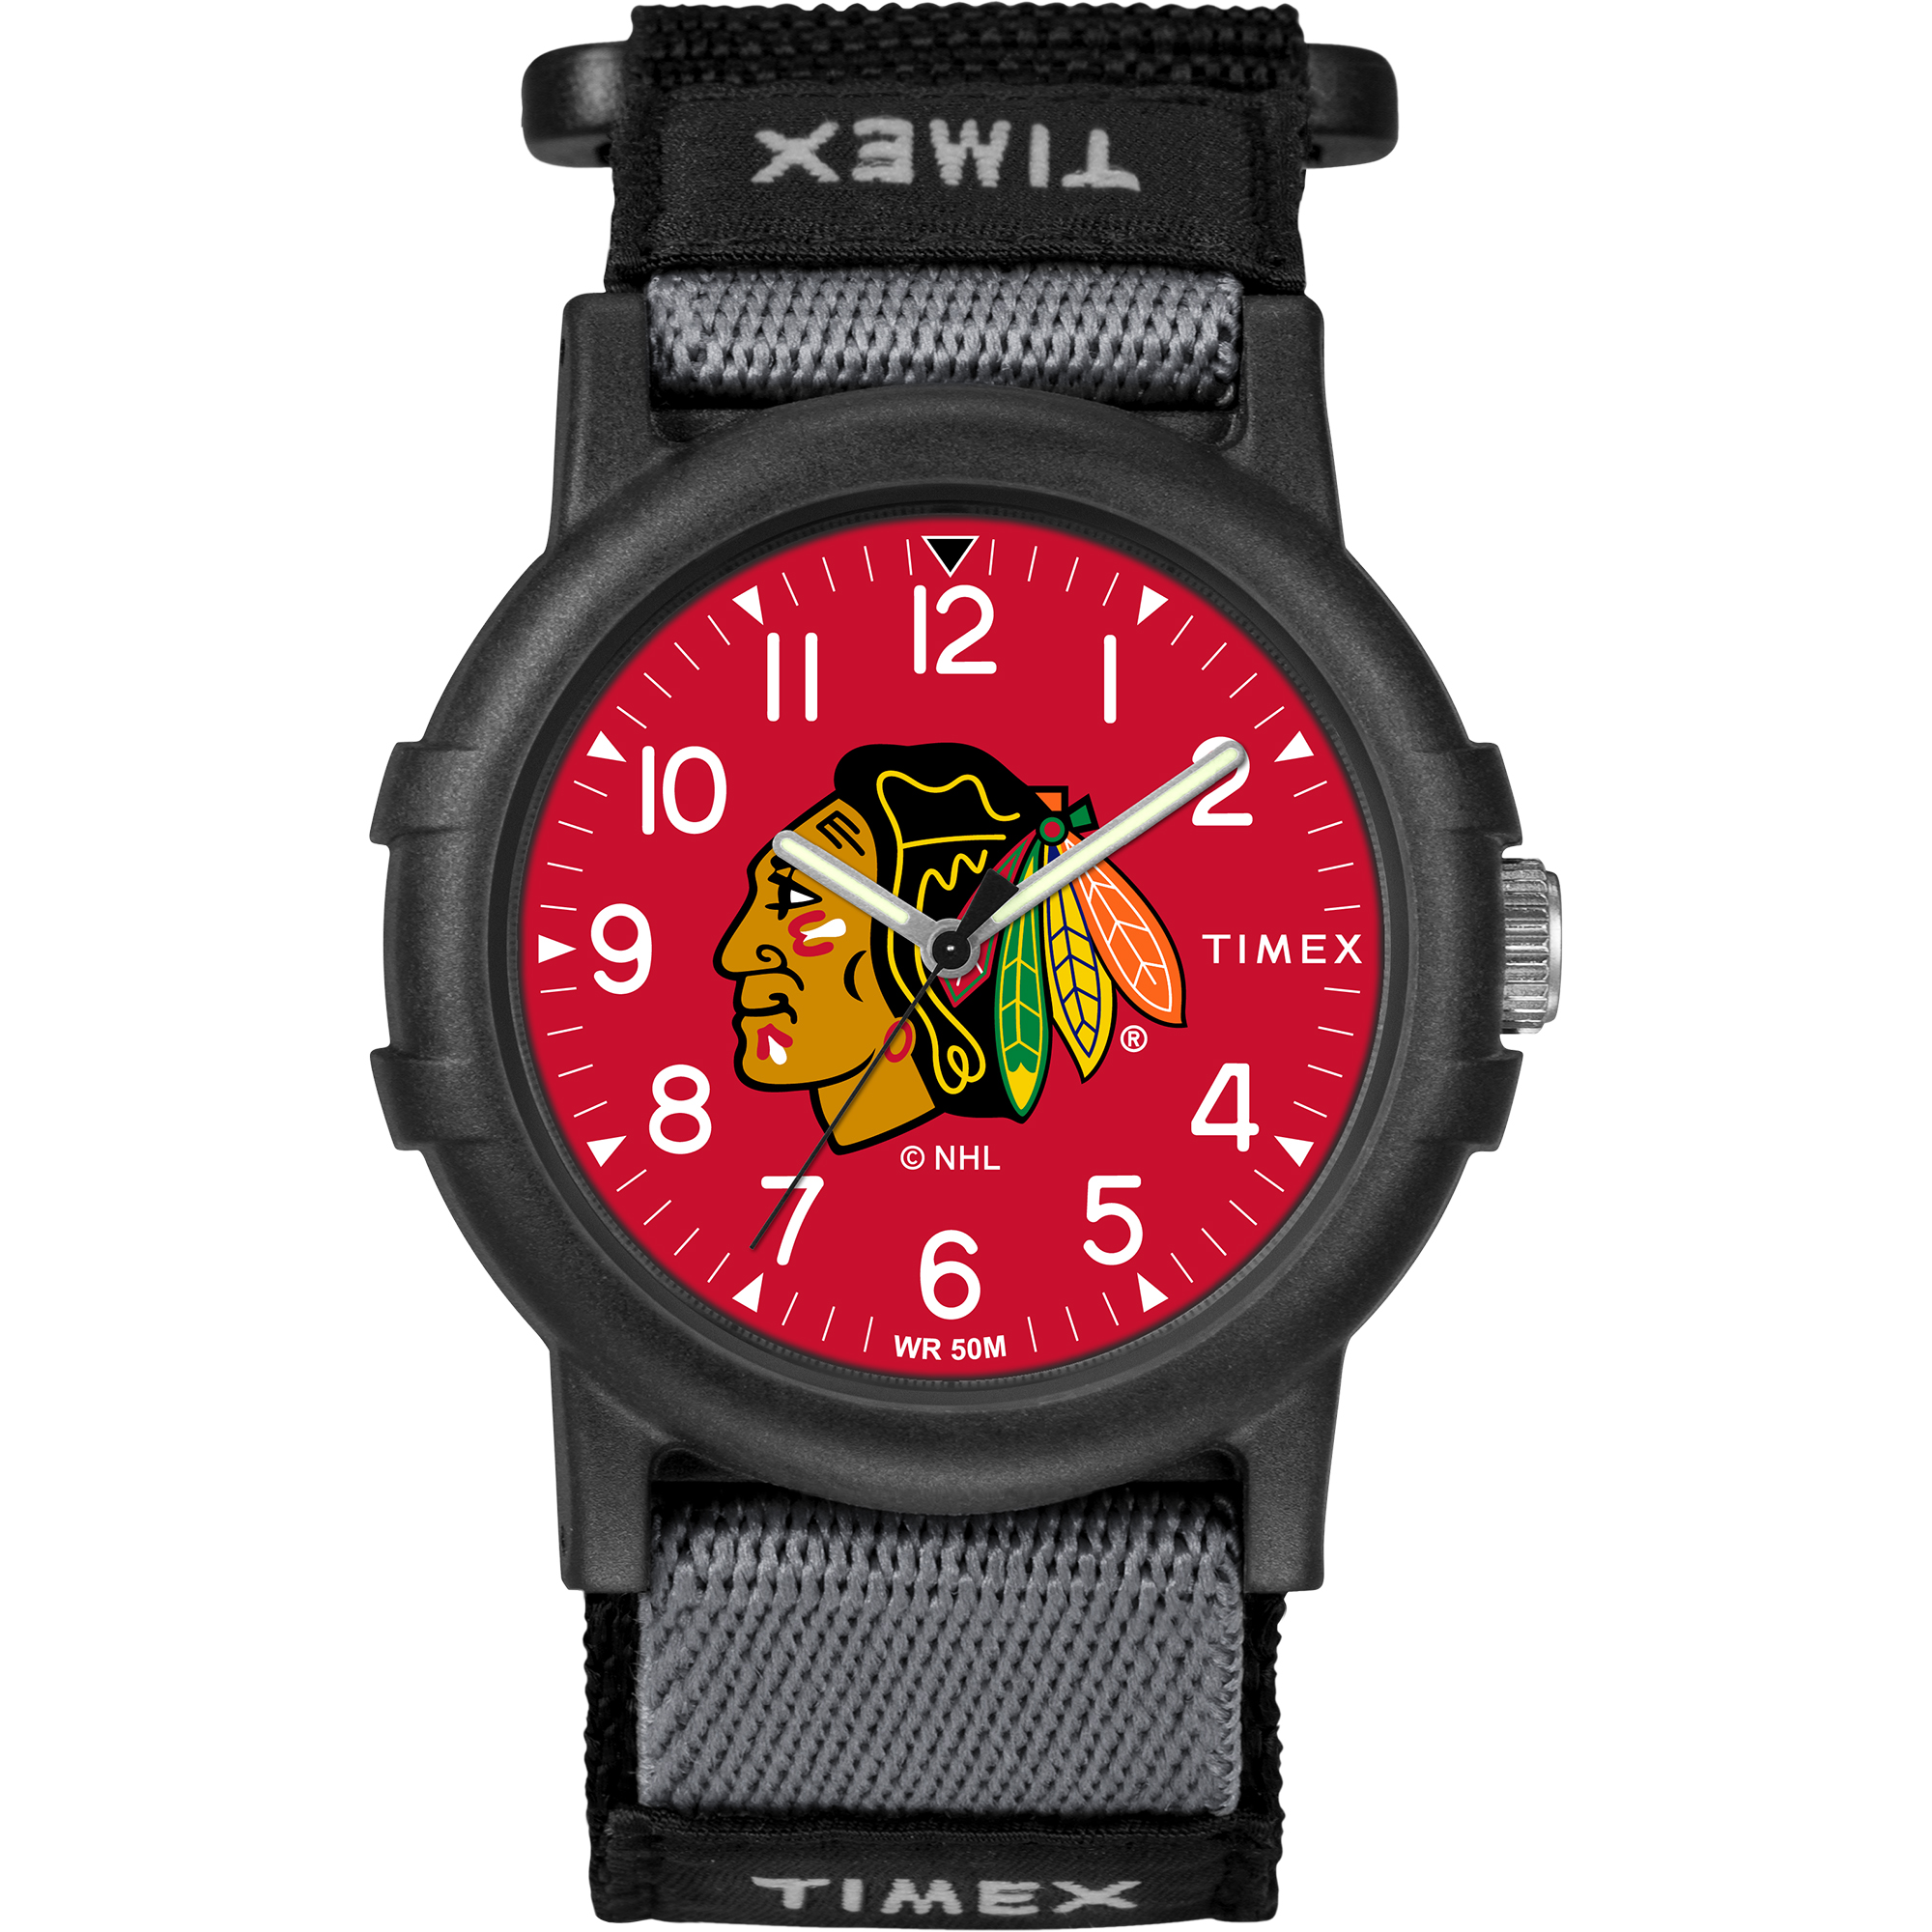 Timex - NHL Tribute Collection Recruite Youth Watch, Chicago Blackhawks